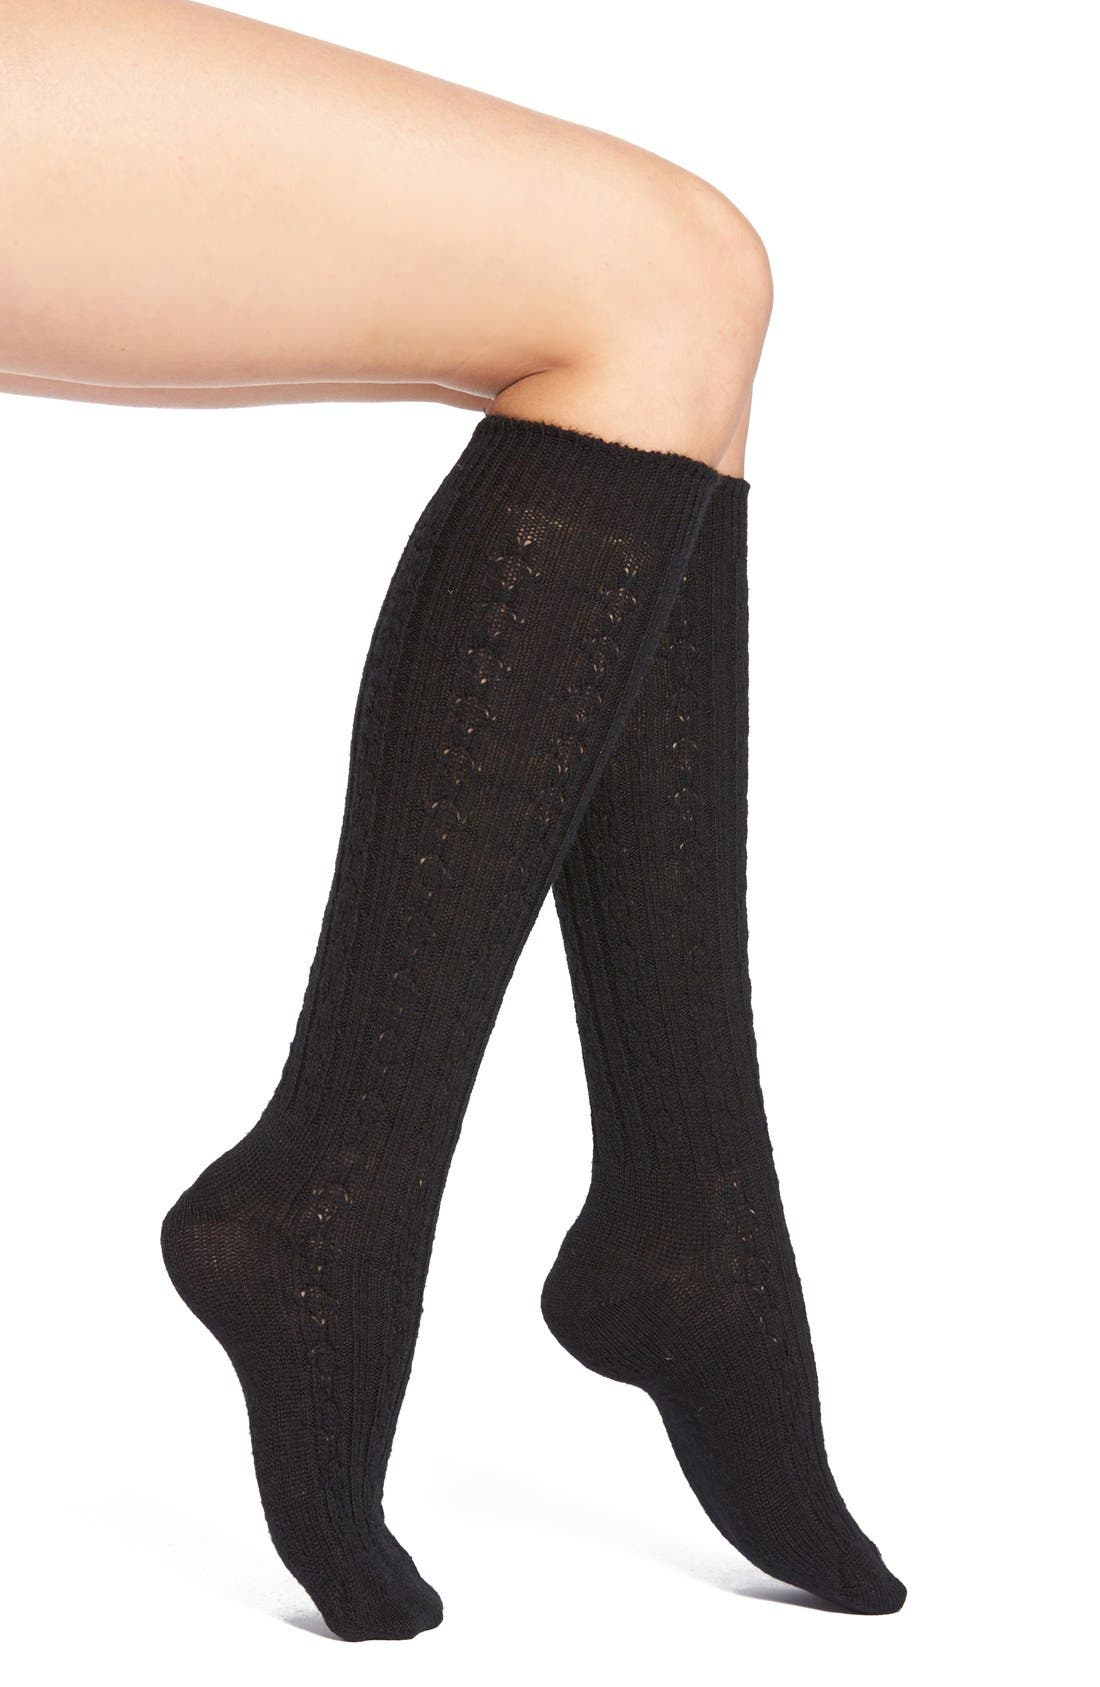 Cable Knit Knee Socks,                         Main,                         color,